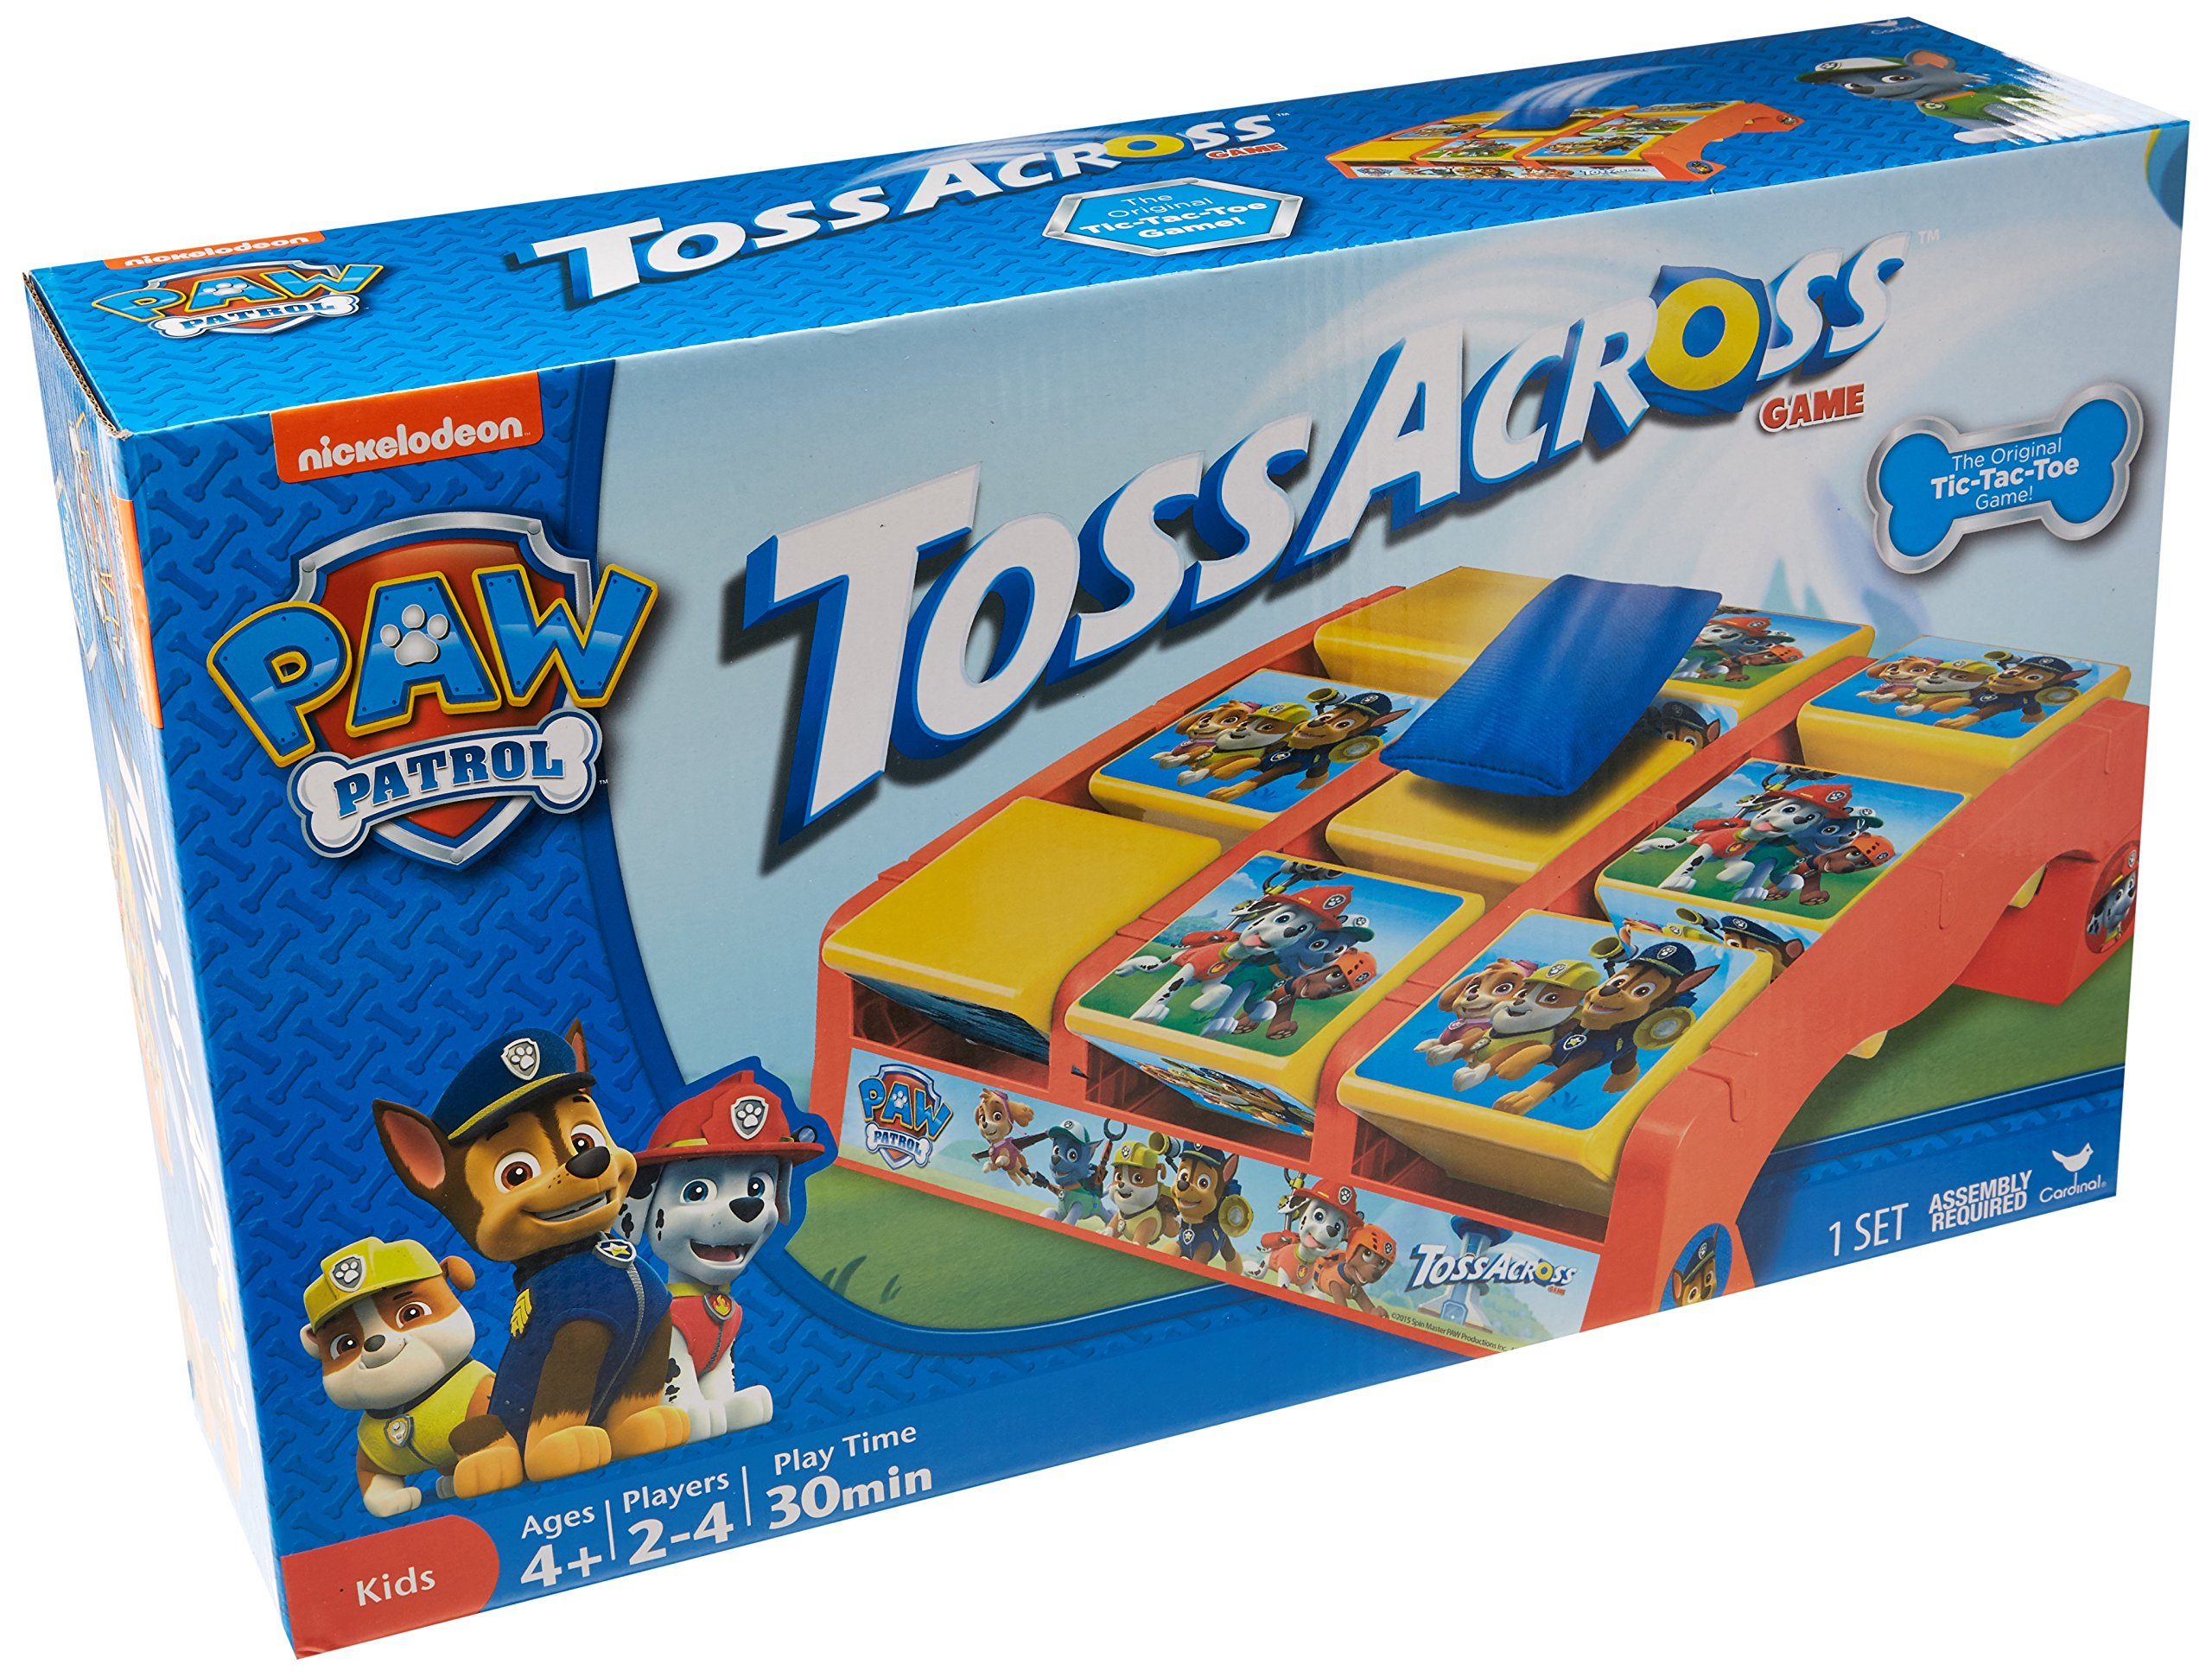 PAW Patrol Toss Across Game